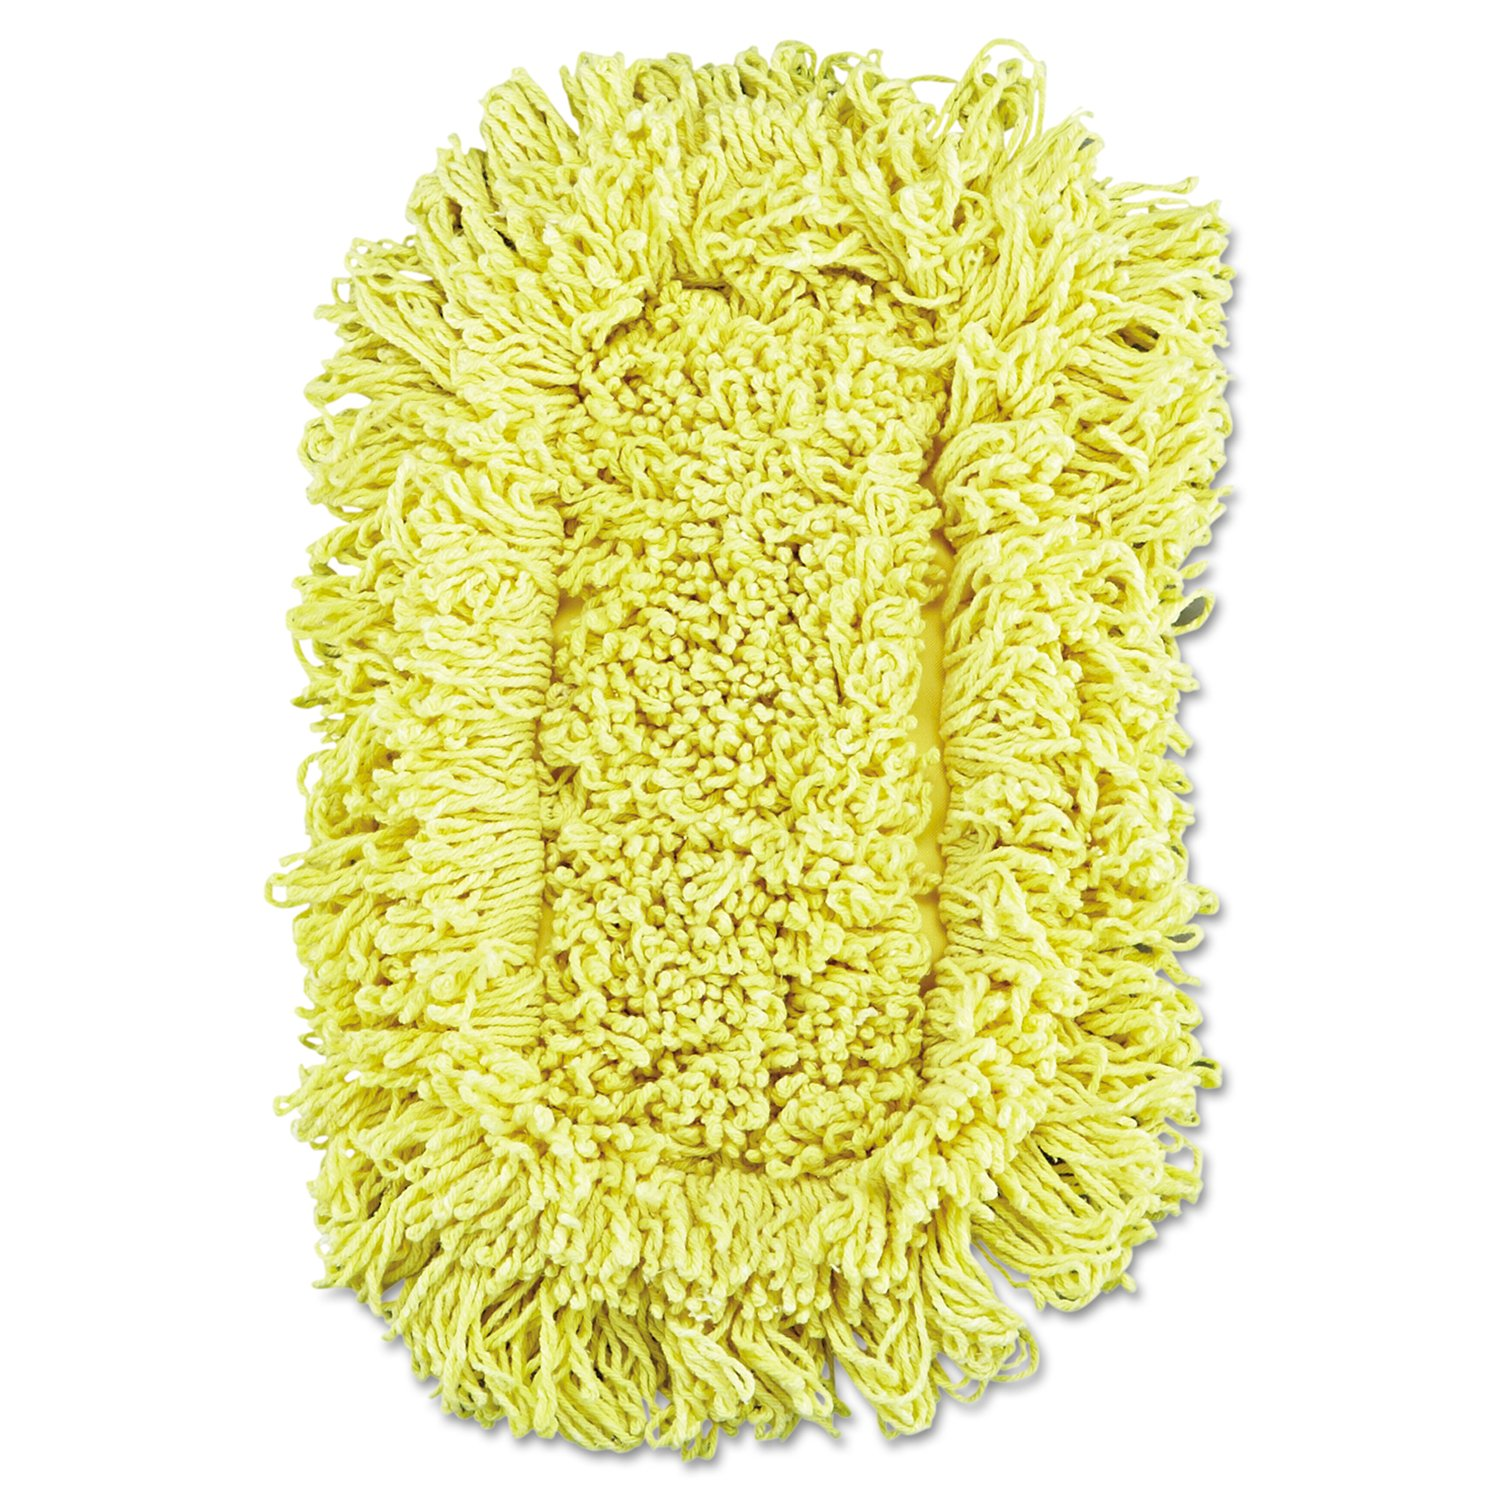 Rubbermaid Commercial RCP J151-12 Trapper Looped-End Dust Mop Head, 12'' x 5'', Yellow (Pack of 12)